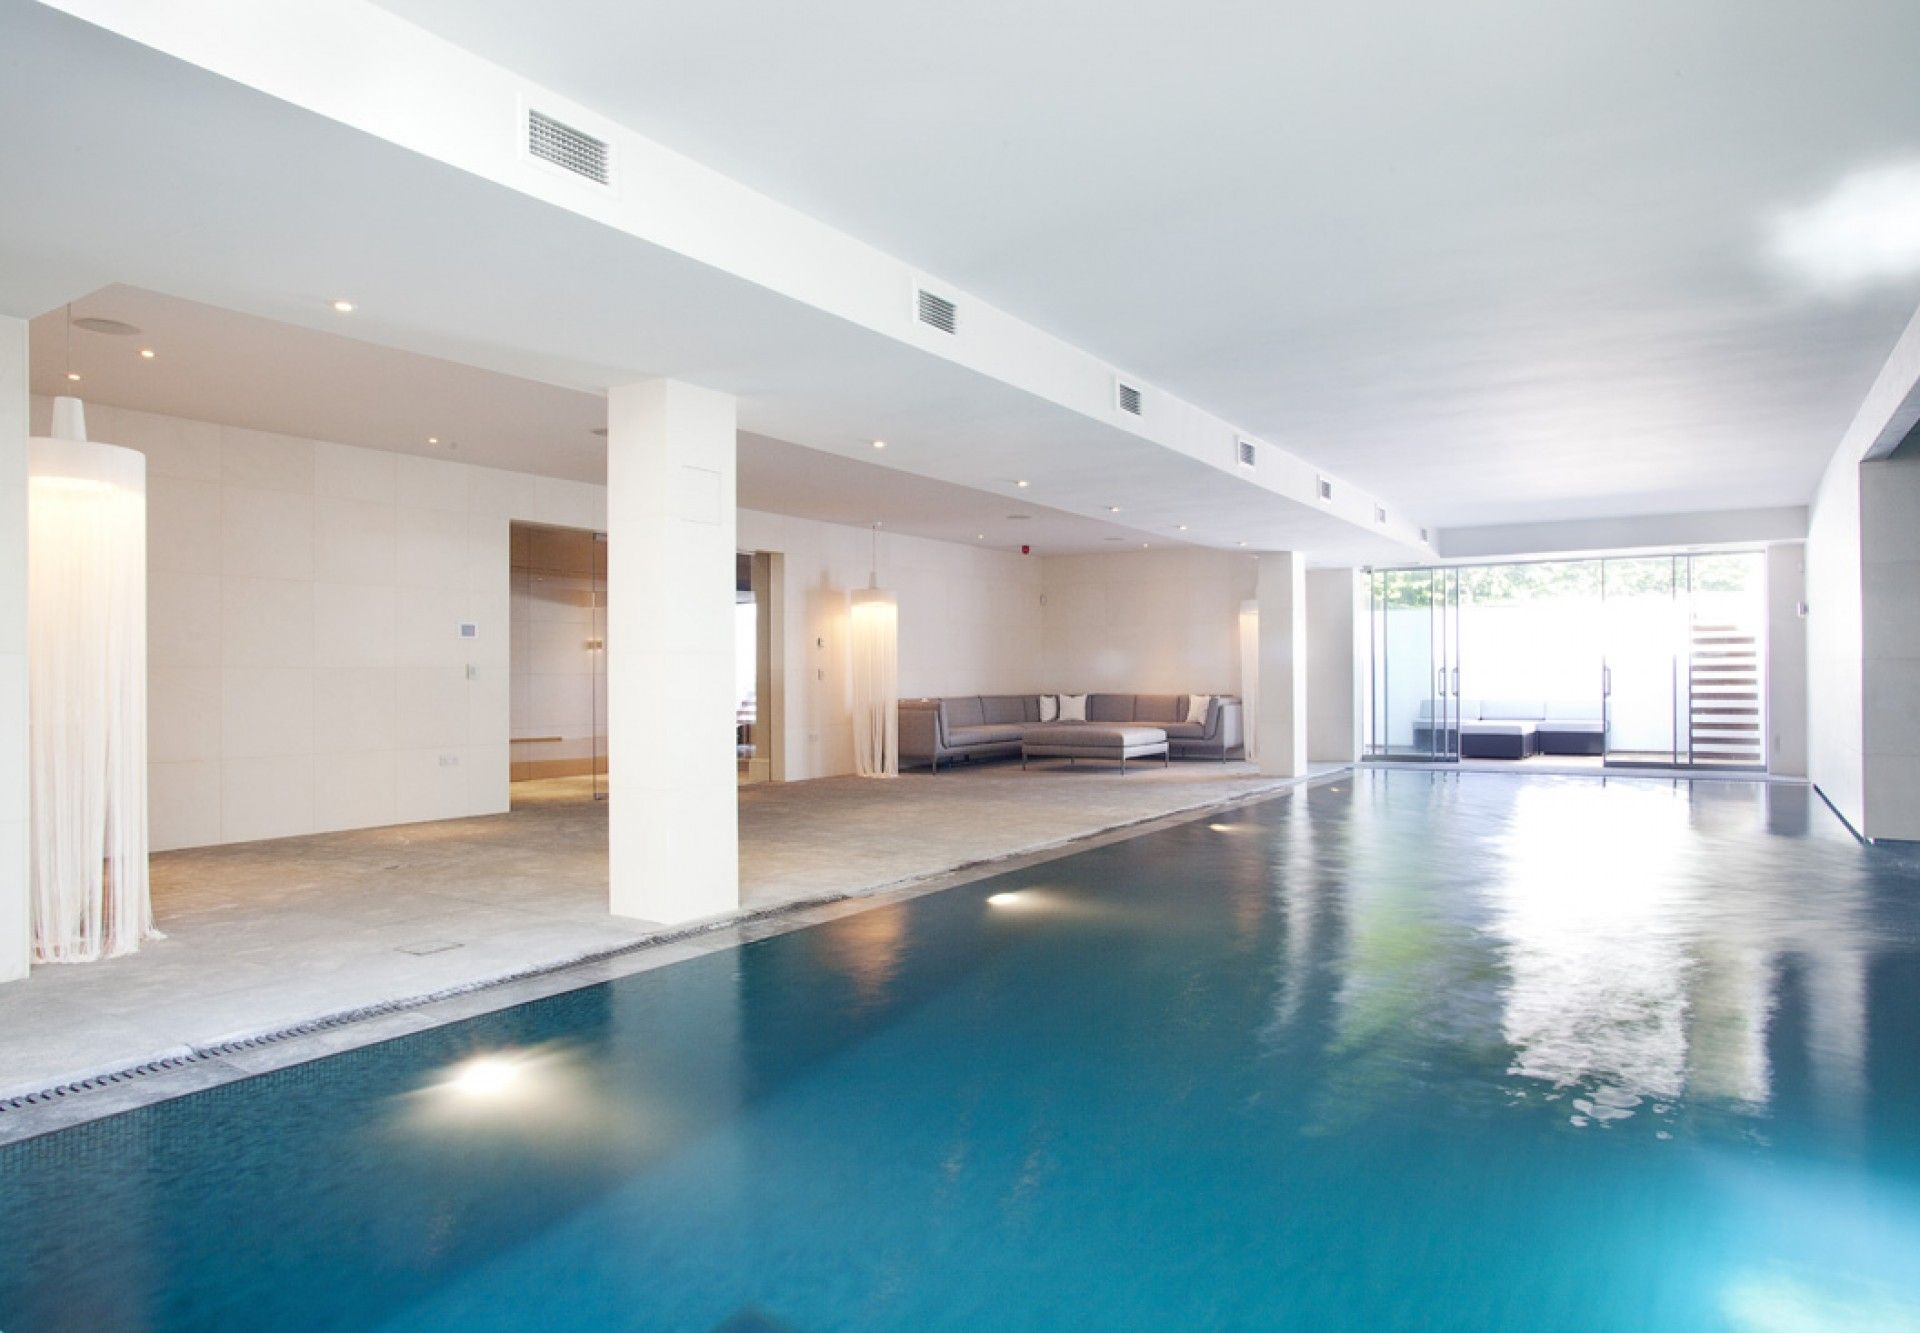 indoor basement swimming pool, wimbledon | swimming pool ideas